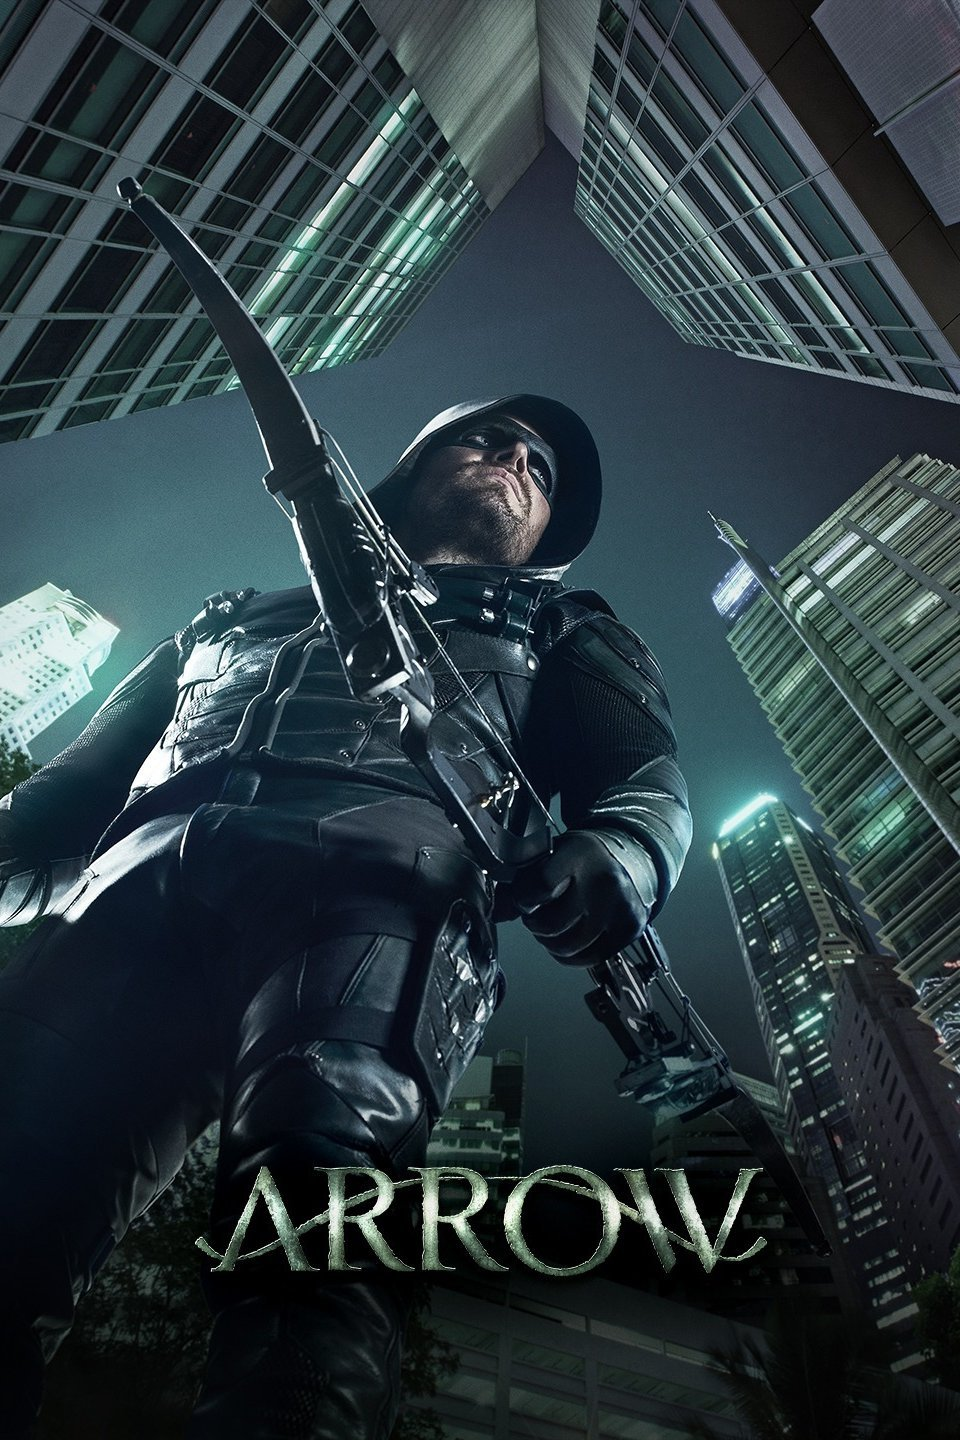 Arrow Season 5 Episode 5 Download WEB-DL